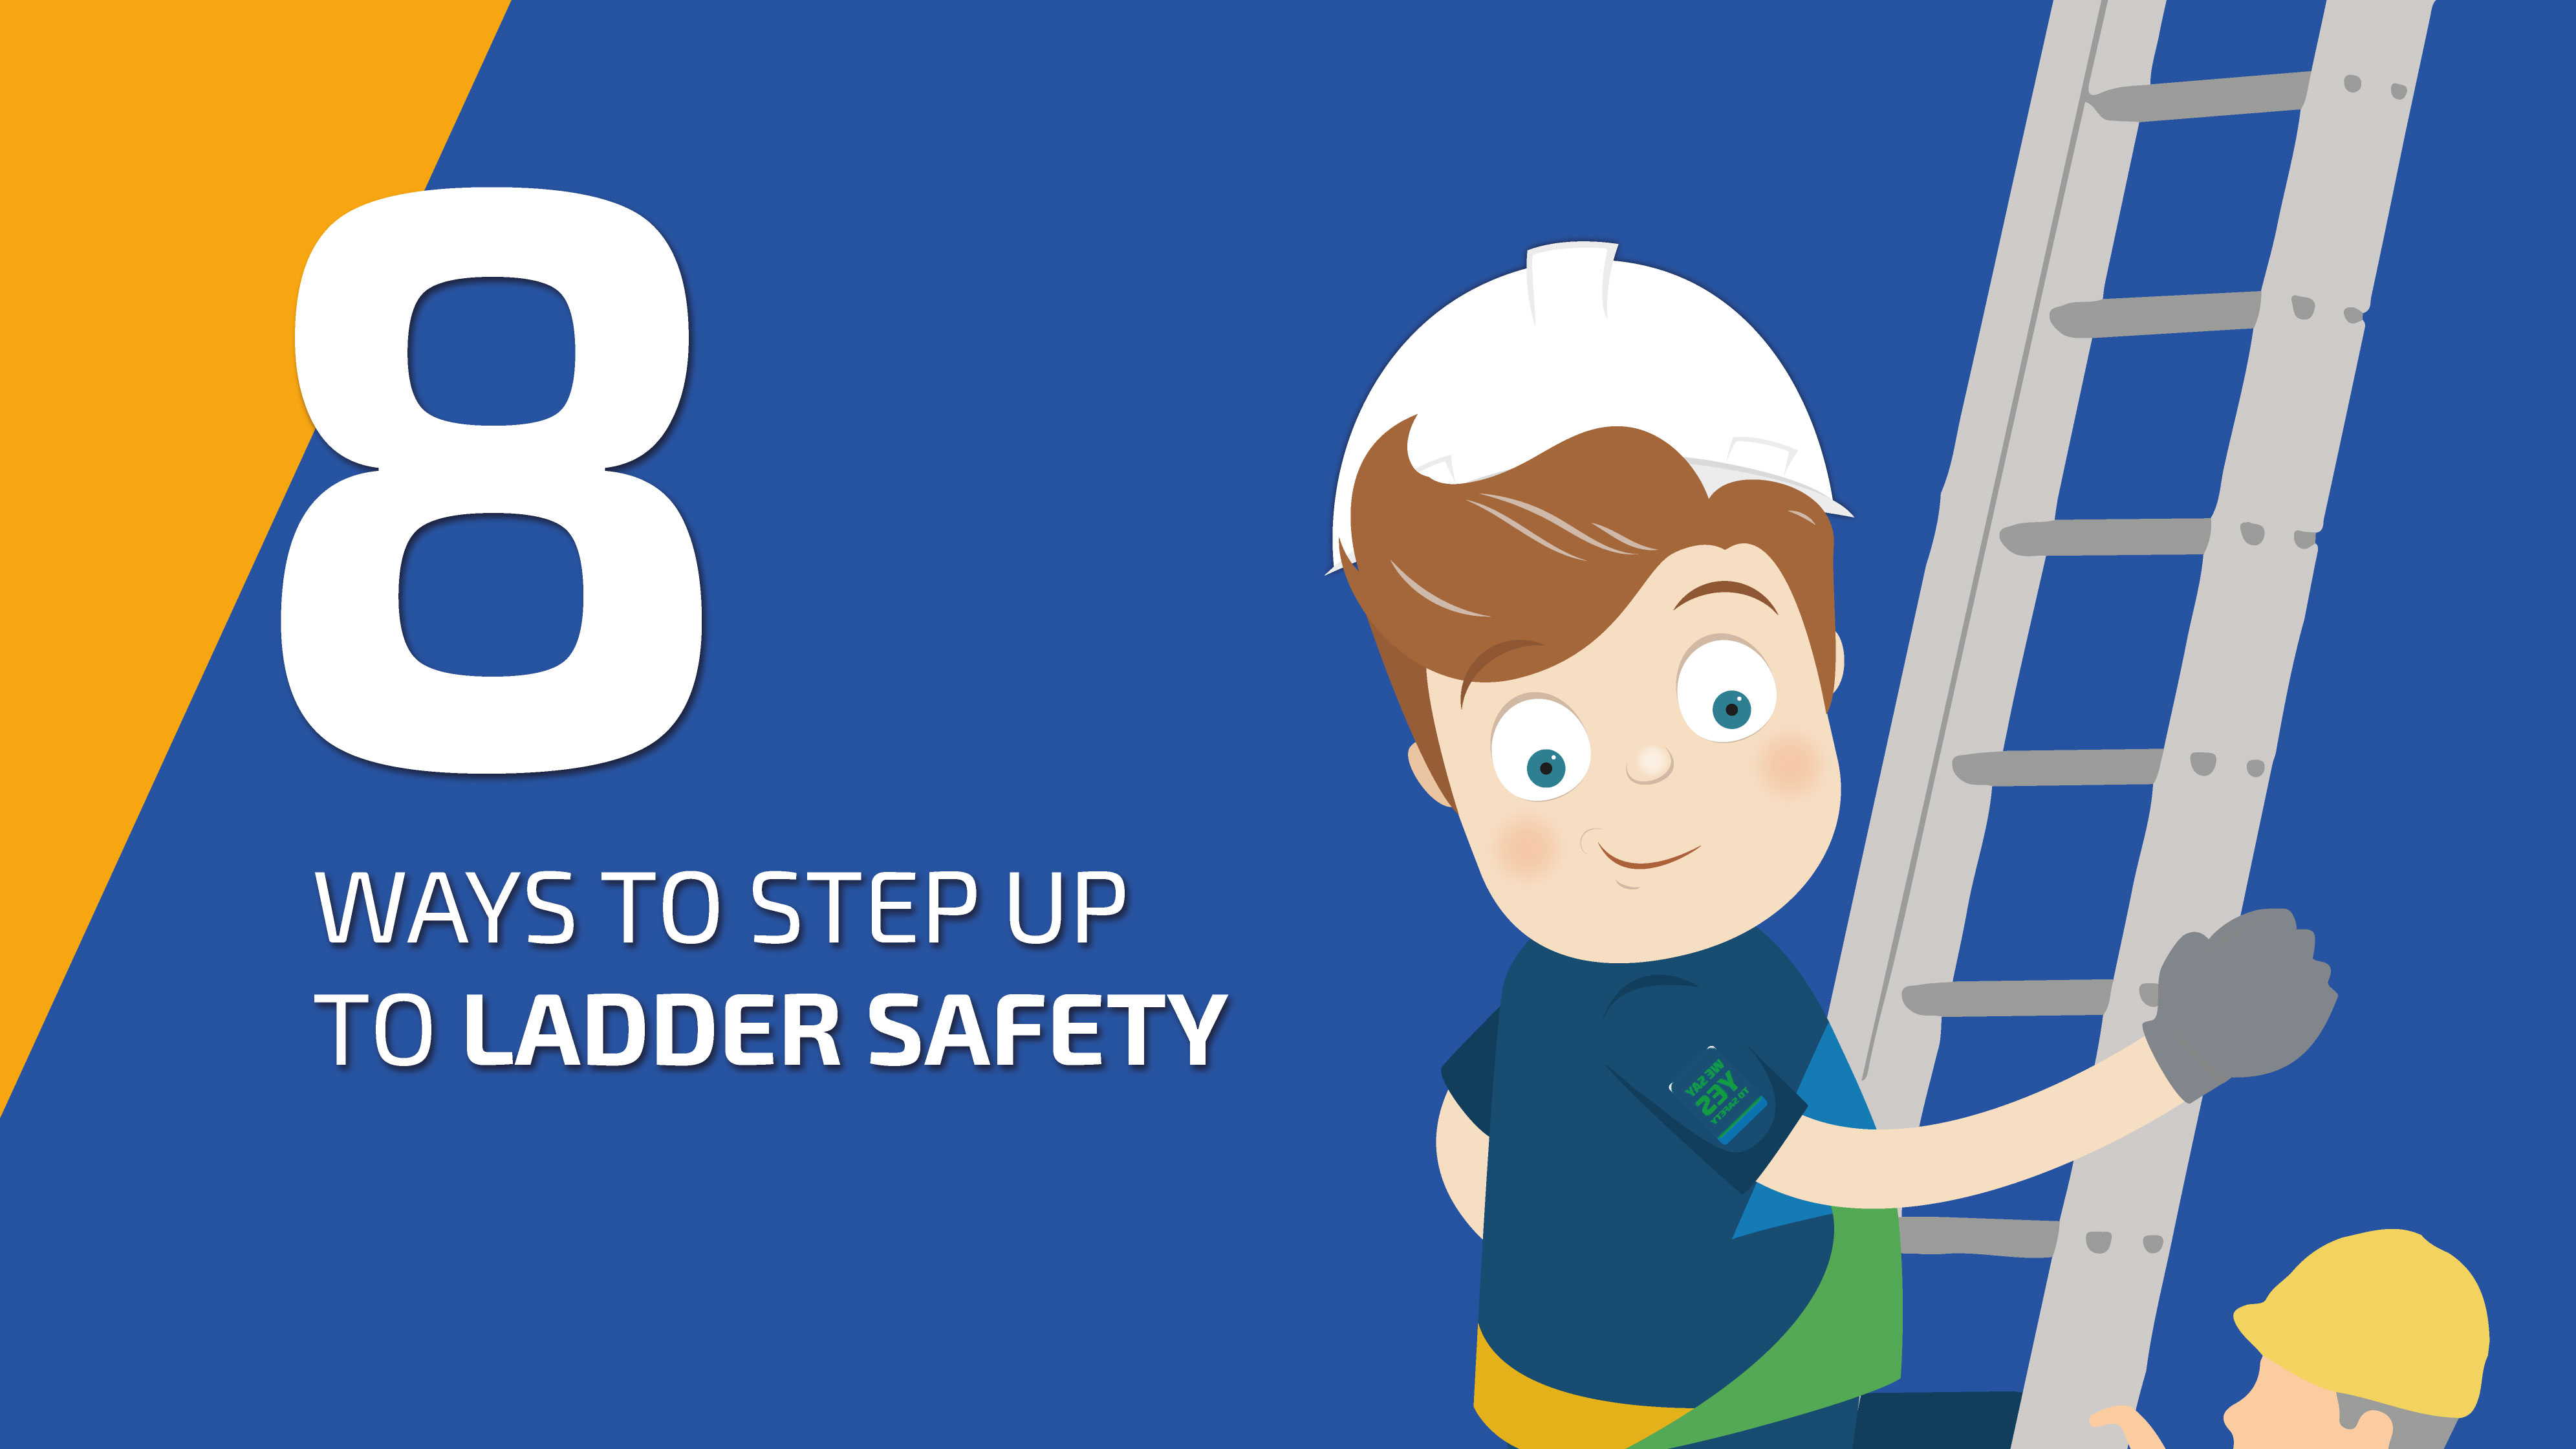 Ladder Safety: How to! 1